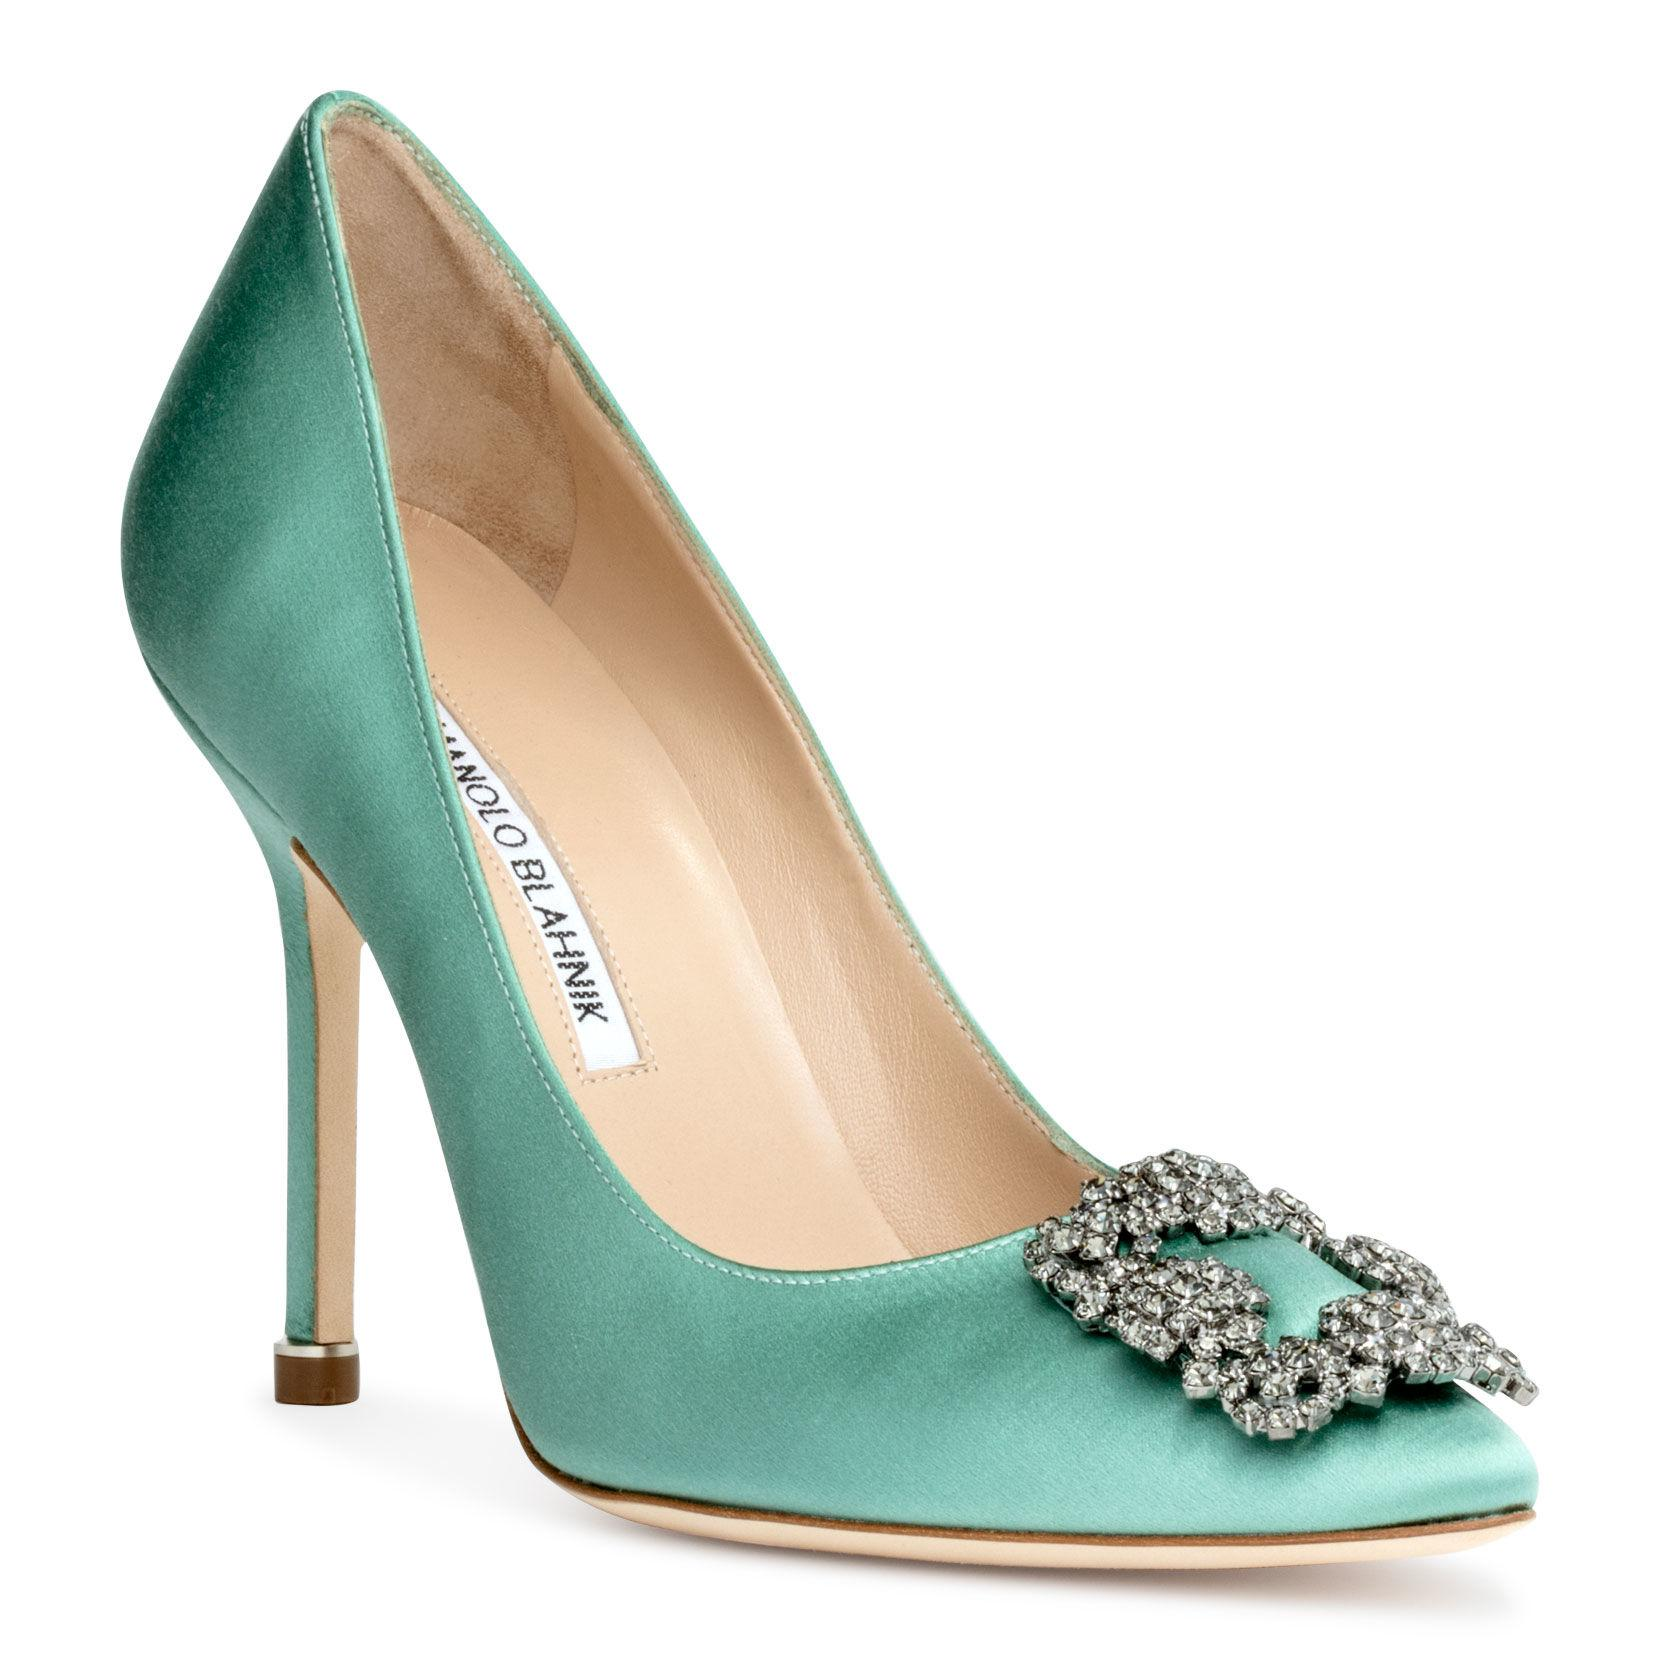 49d89664cfa Lyst - Manolo Blahnik Hangisi 105 Satin Green Fmc Pumps in Green